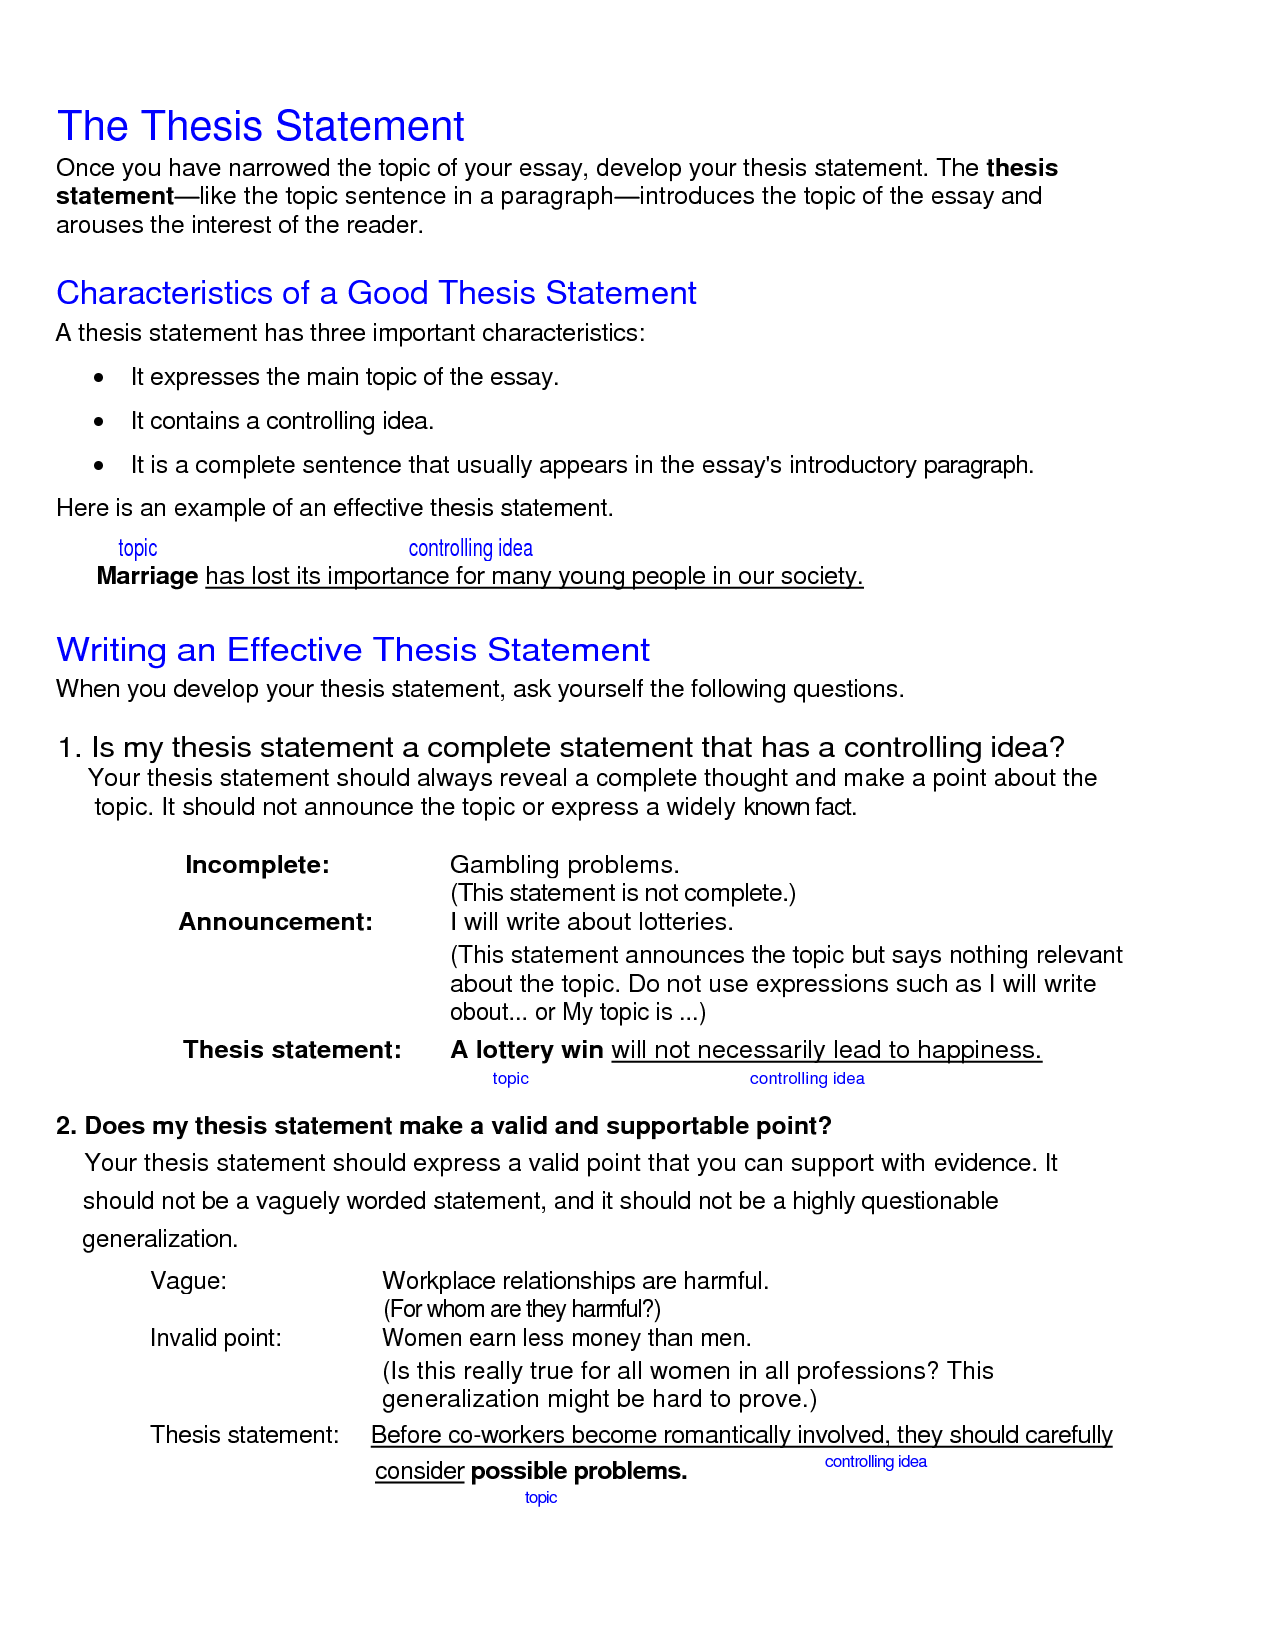 Blackline masters for writing thesis statements